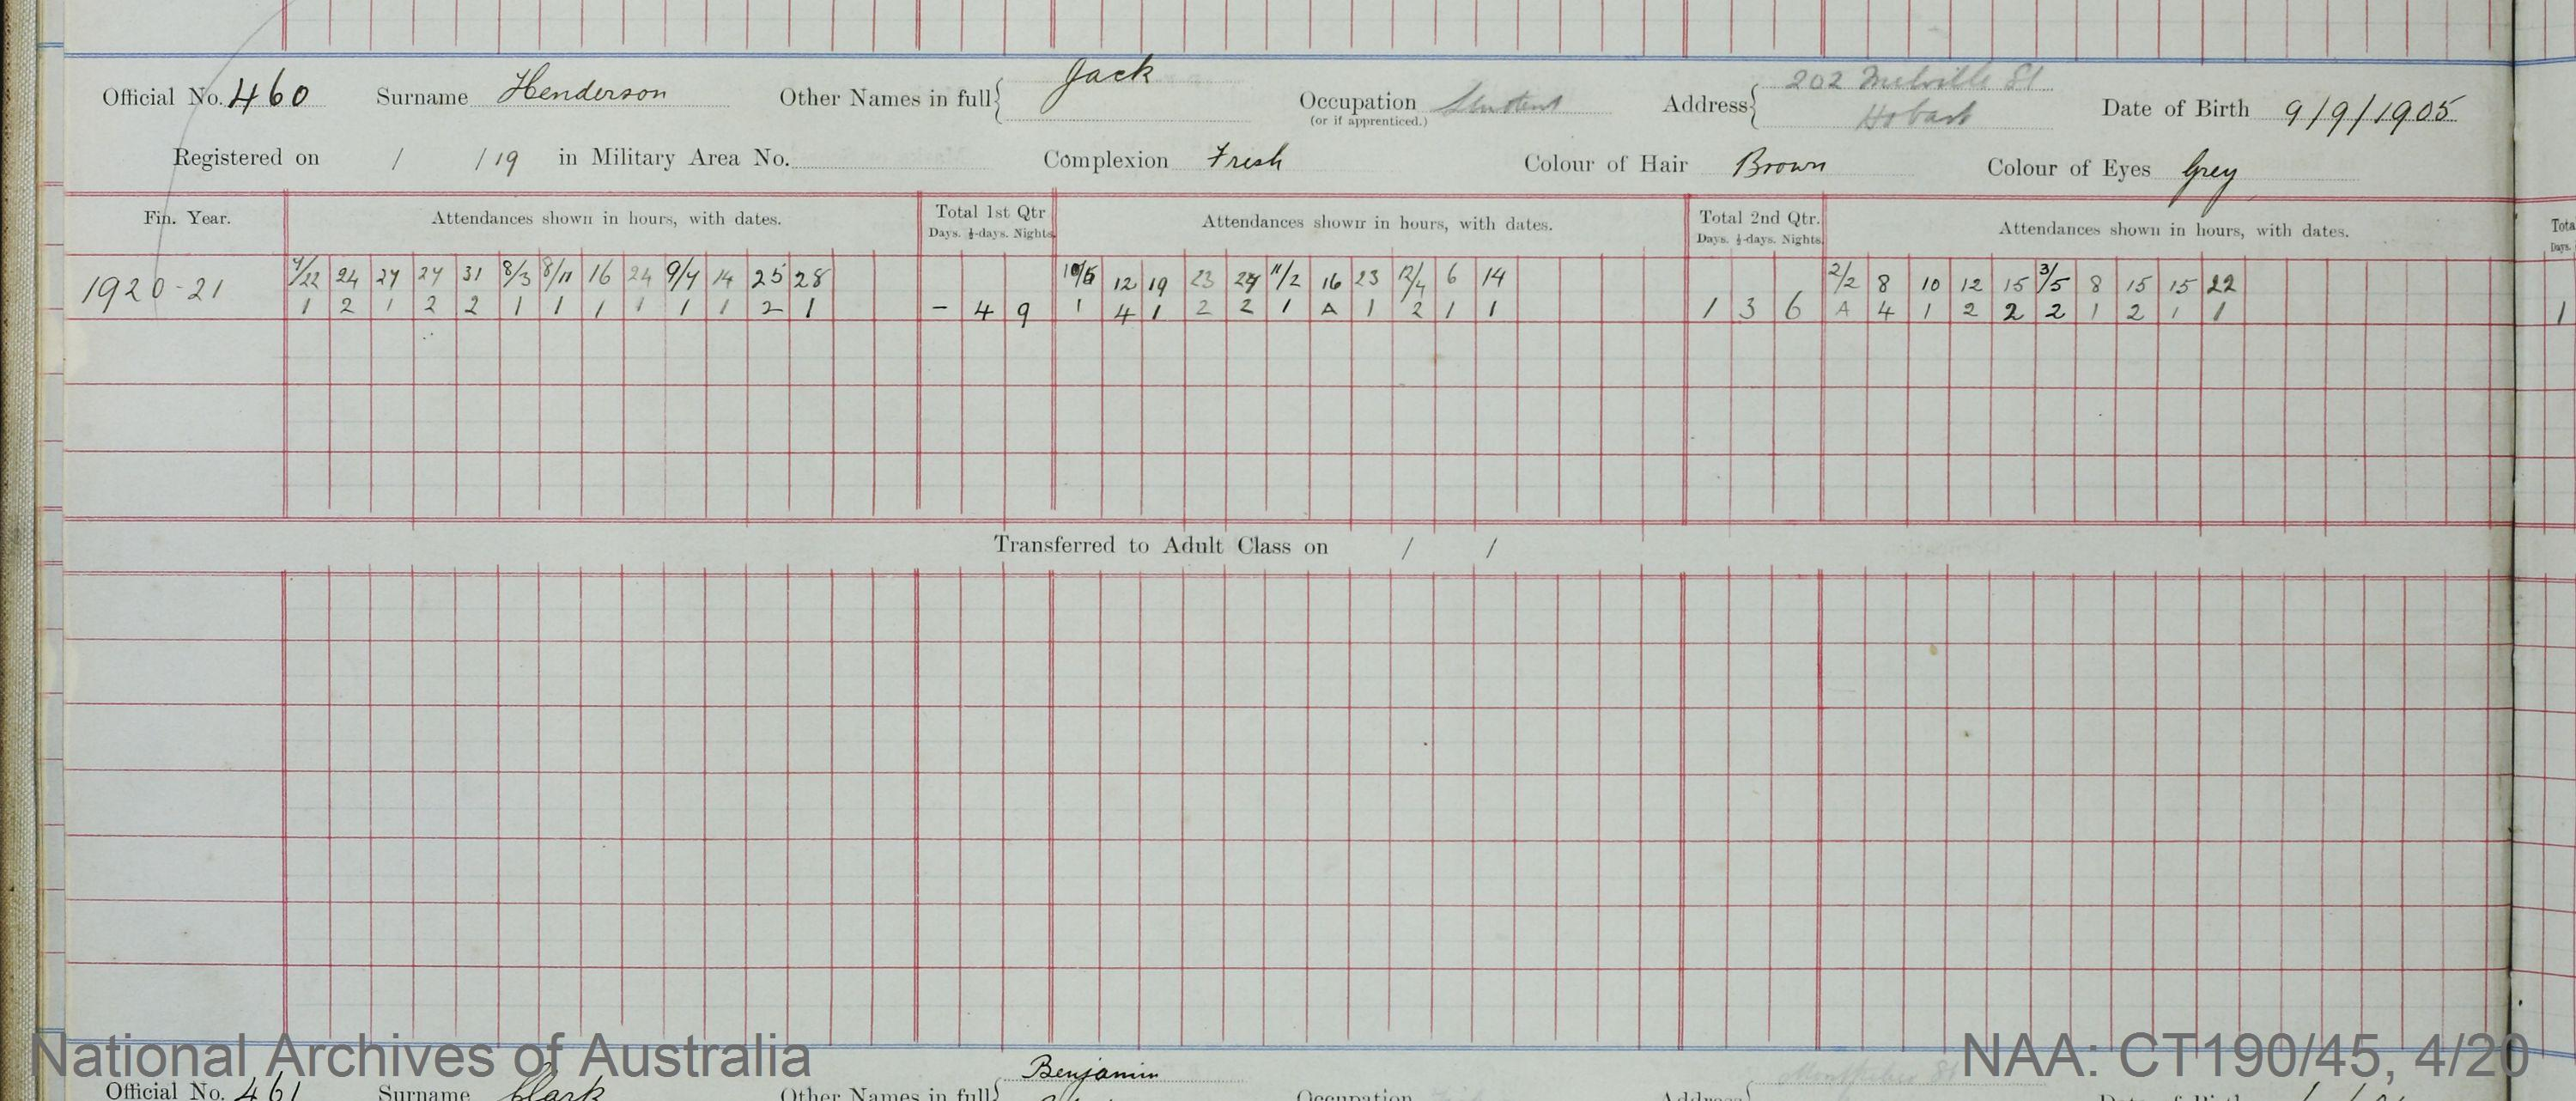 SURNAME - HENDERSON;  GIVEN NAME(S) - Jack;  OFFICIAL NUMBER - 460;  DATE OF BIRTH - 9 September 1905;  PLACE OF BIRTH - [Unknown];  NEXT OF KIN - [Unknown];  SERVICE/STATION -Tasmania;  REGISTRATION DATE - 1919